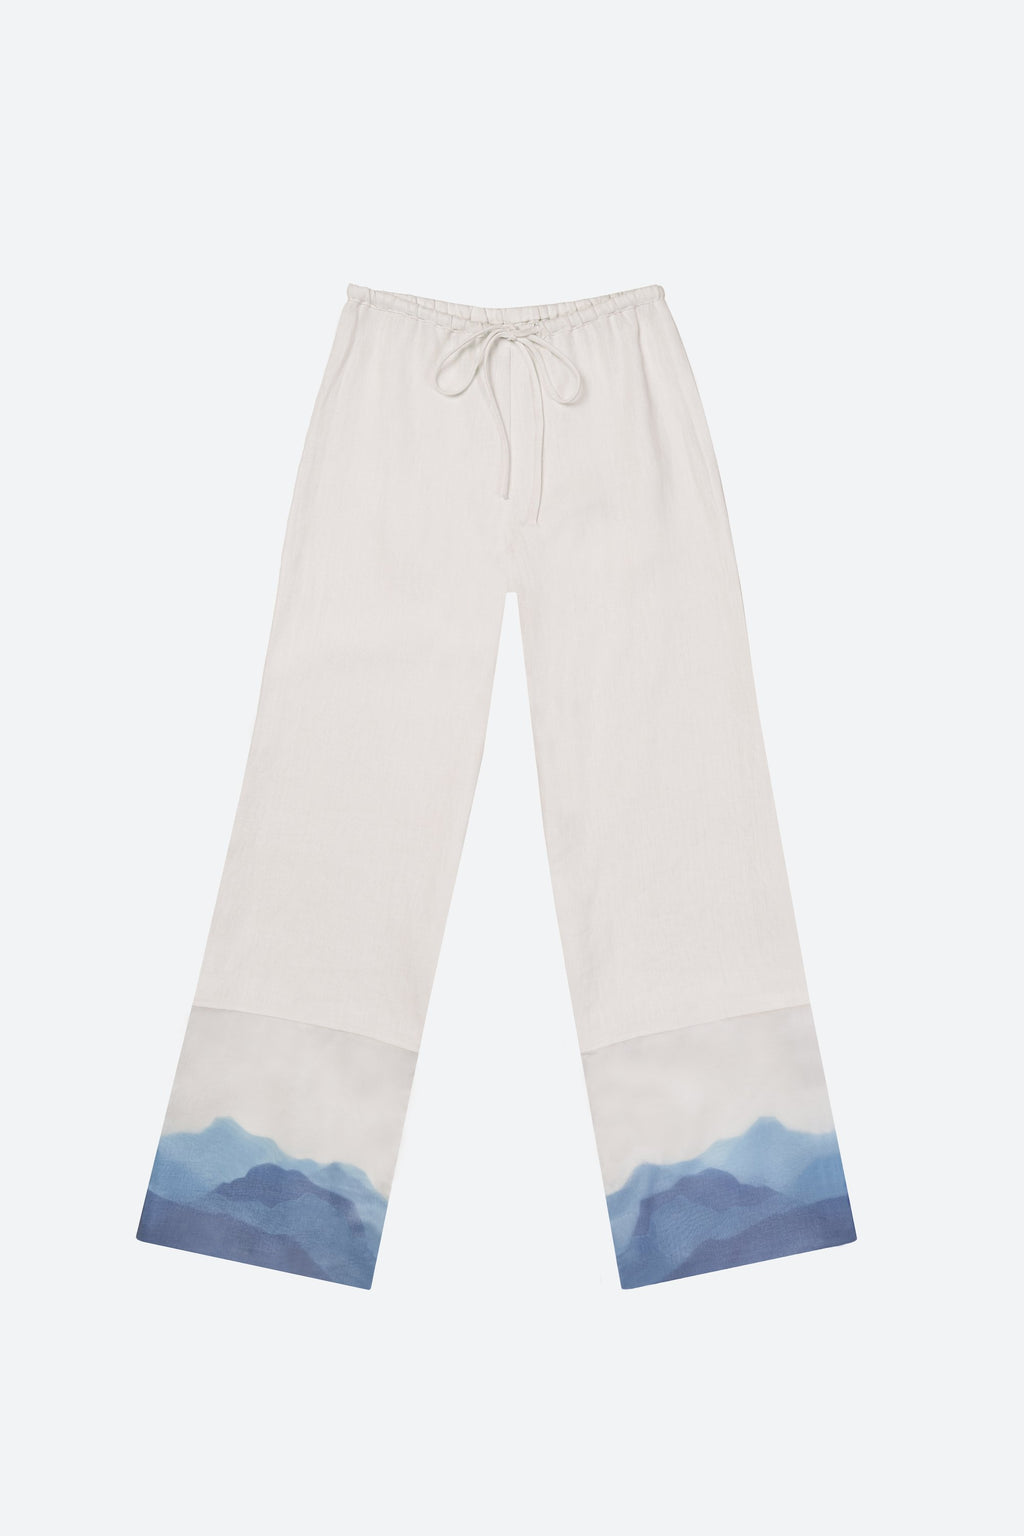 Linen and silk pants, ivory